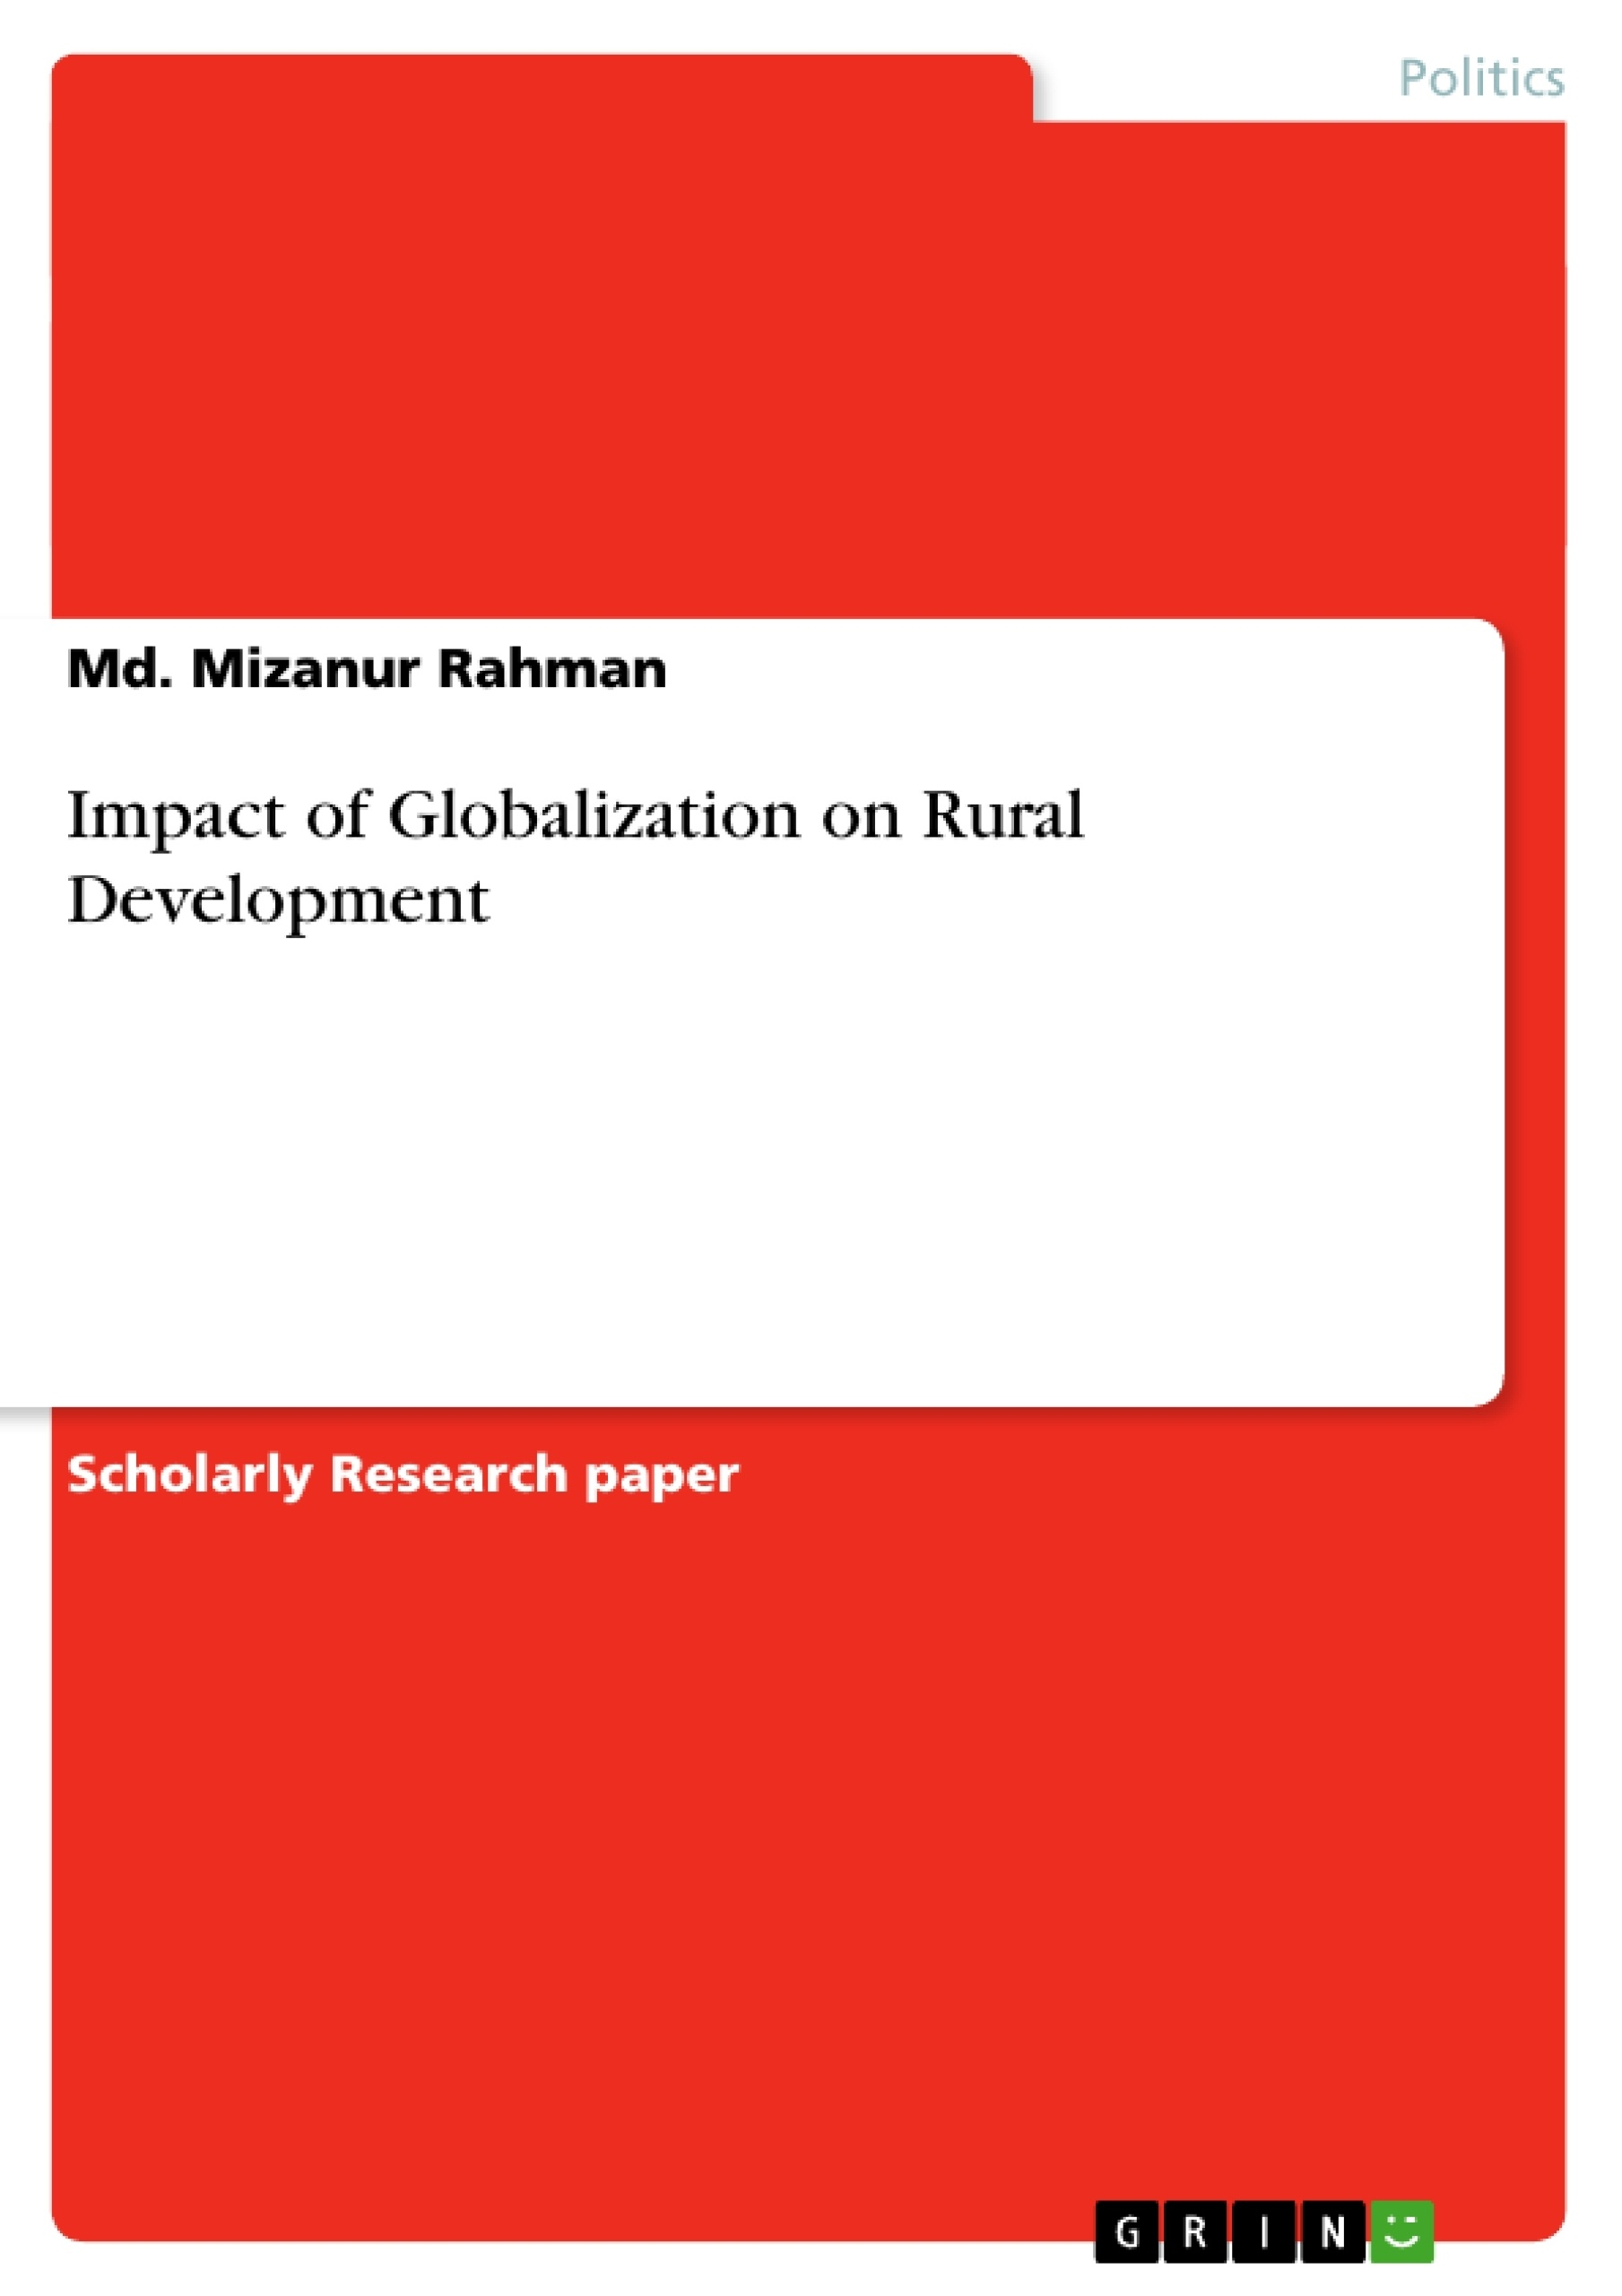 impact of globalization on rural development publish your  upload your own papers earn money and win an iphone x